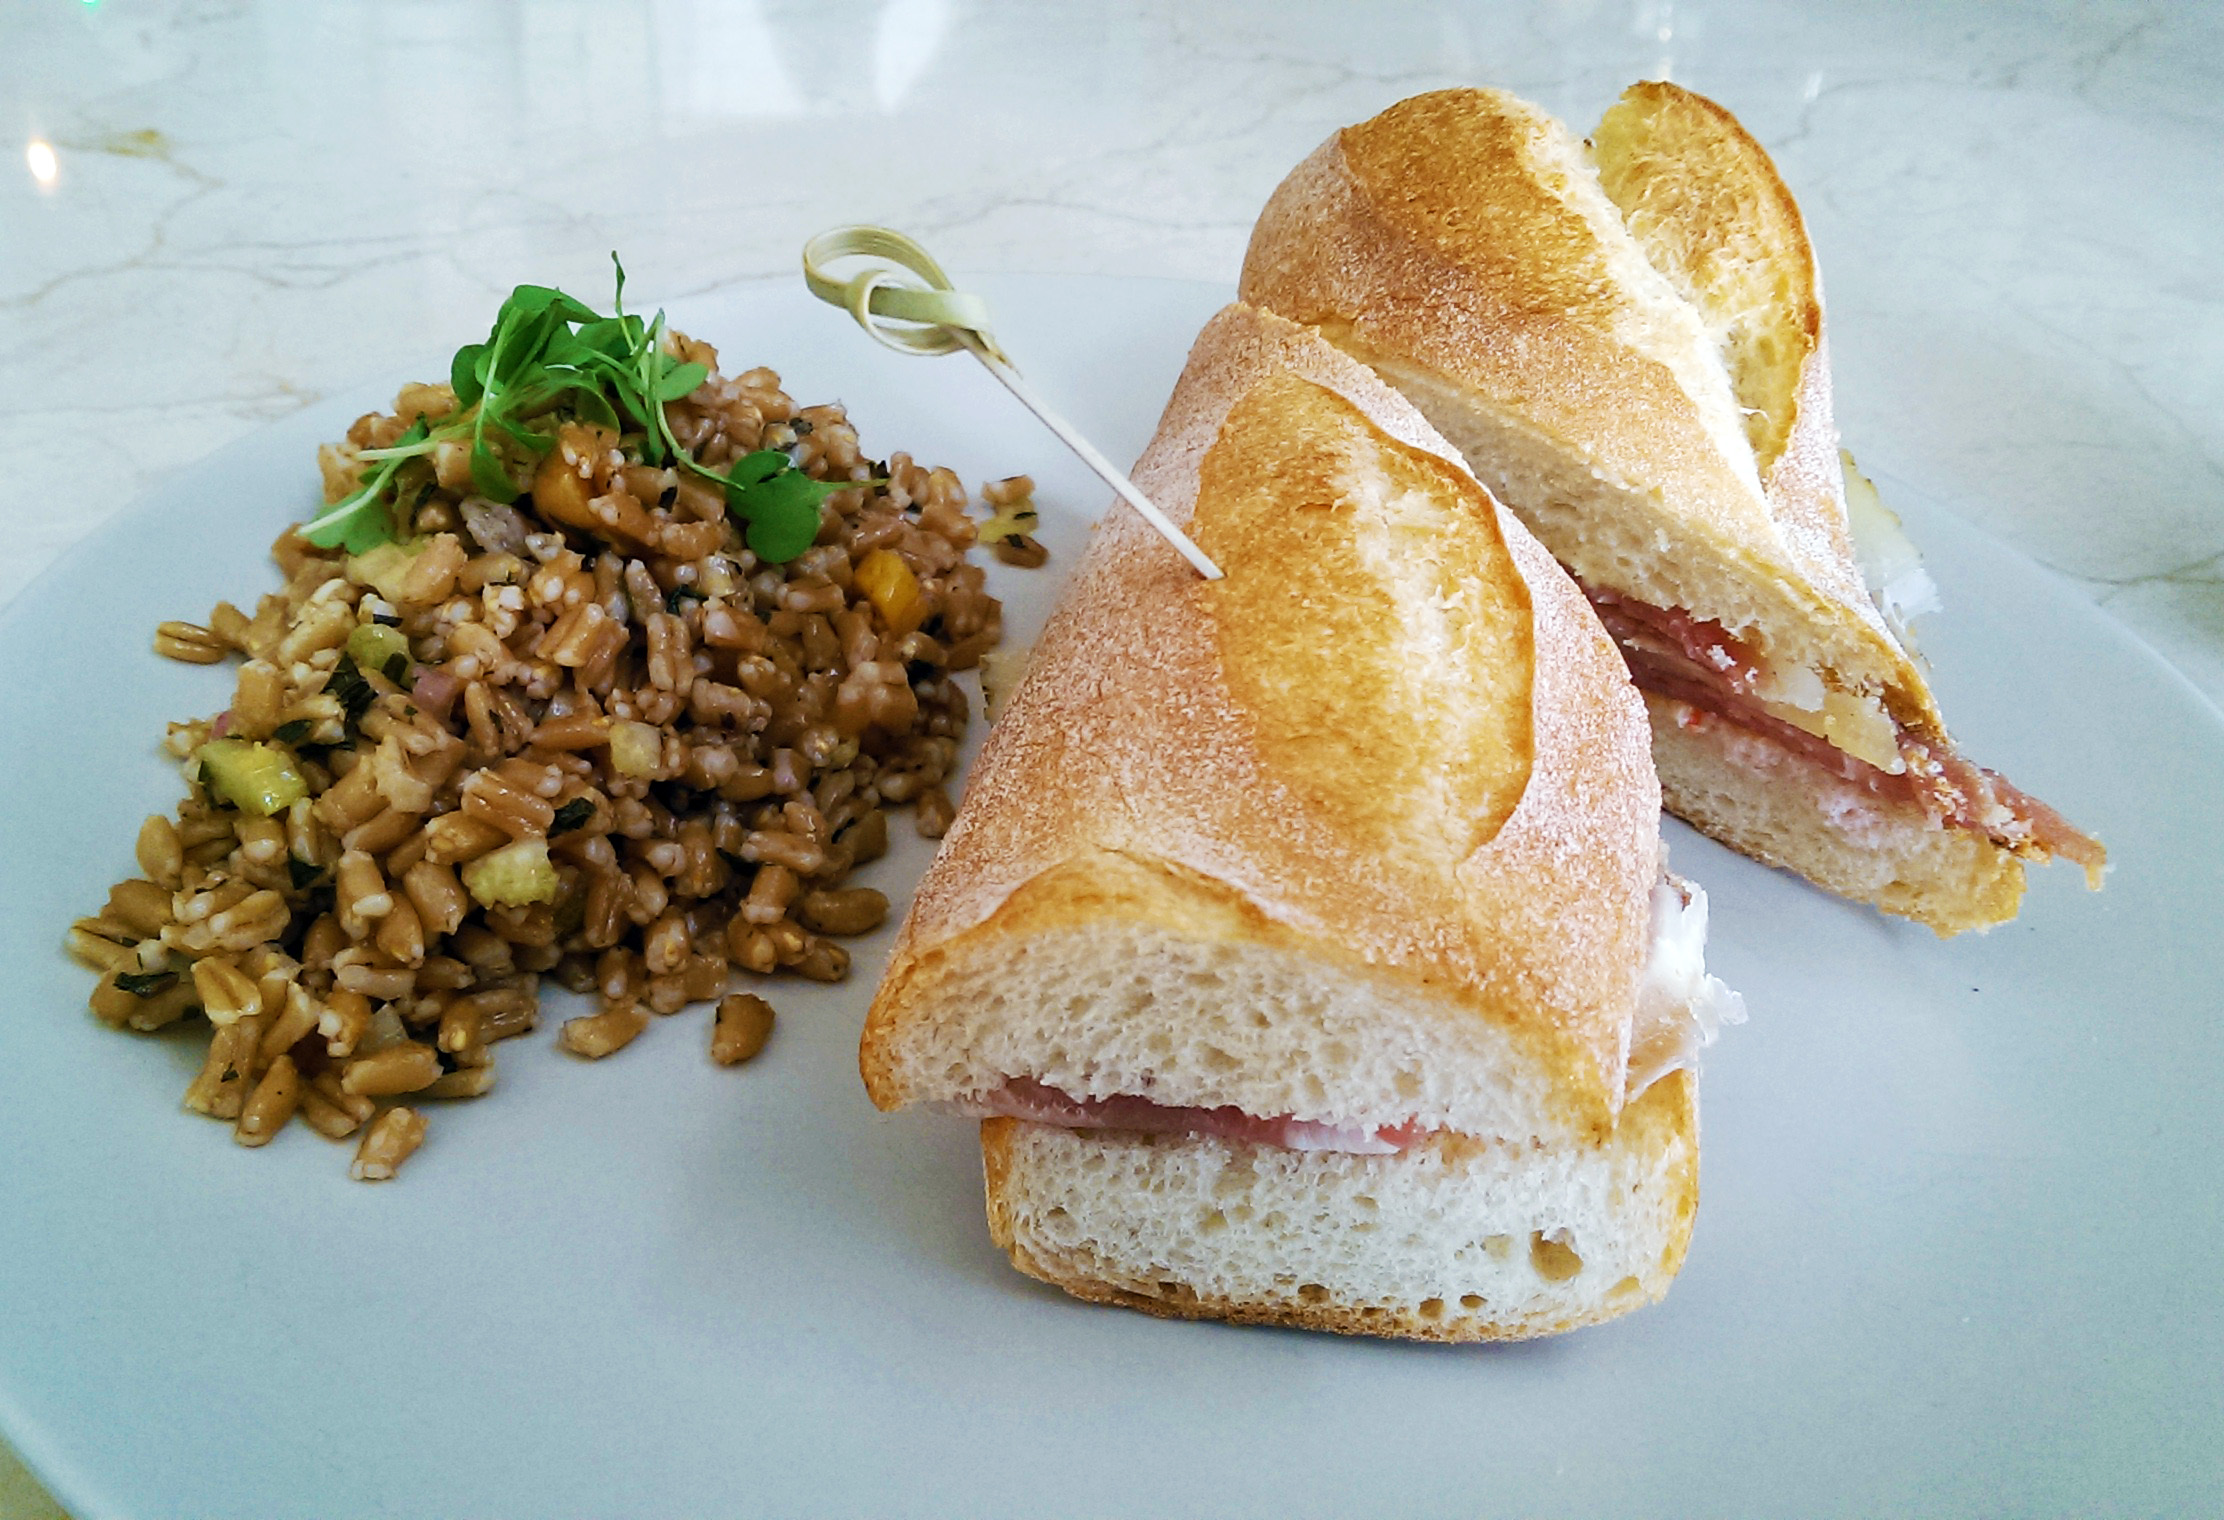 The Bocadilla with the daily grain at The Strand